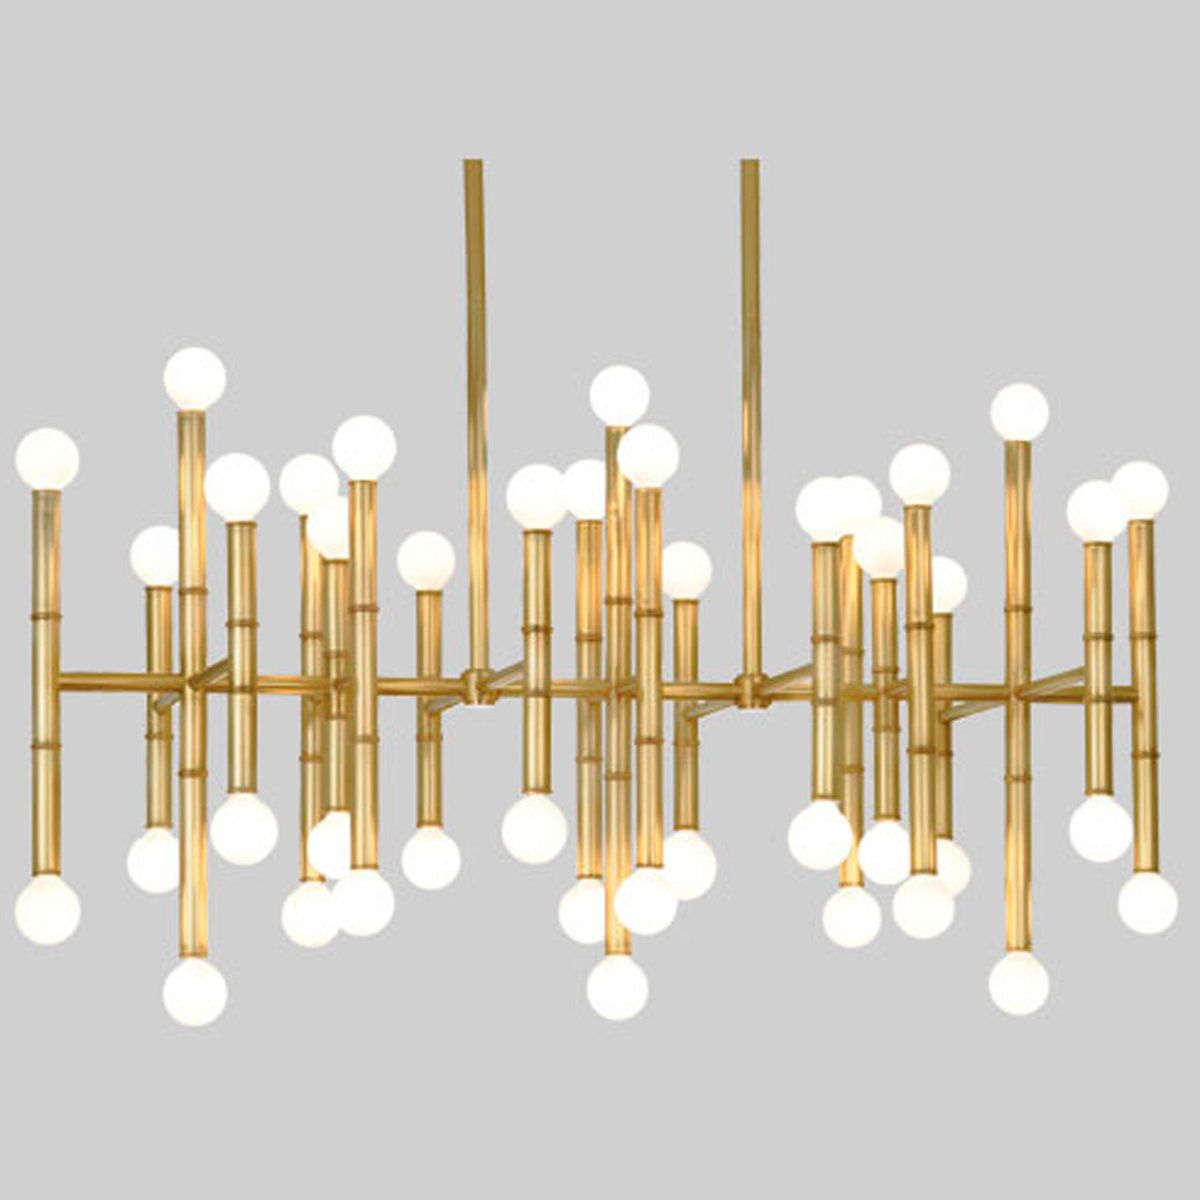 Chic bamboo island chandelier antique brass chandeliers and lights chic bamboo island chandelier arubaitofo Images